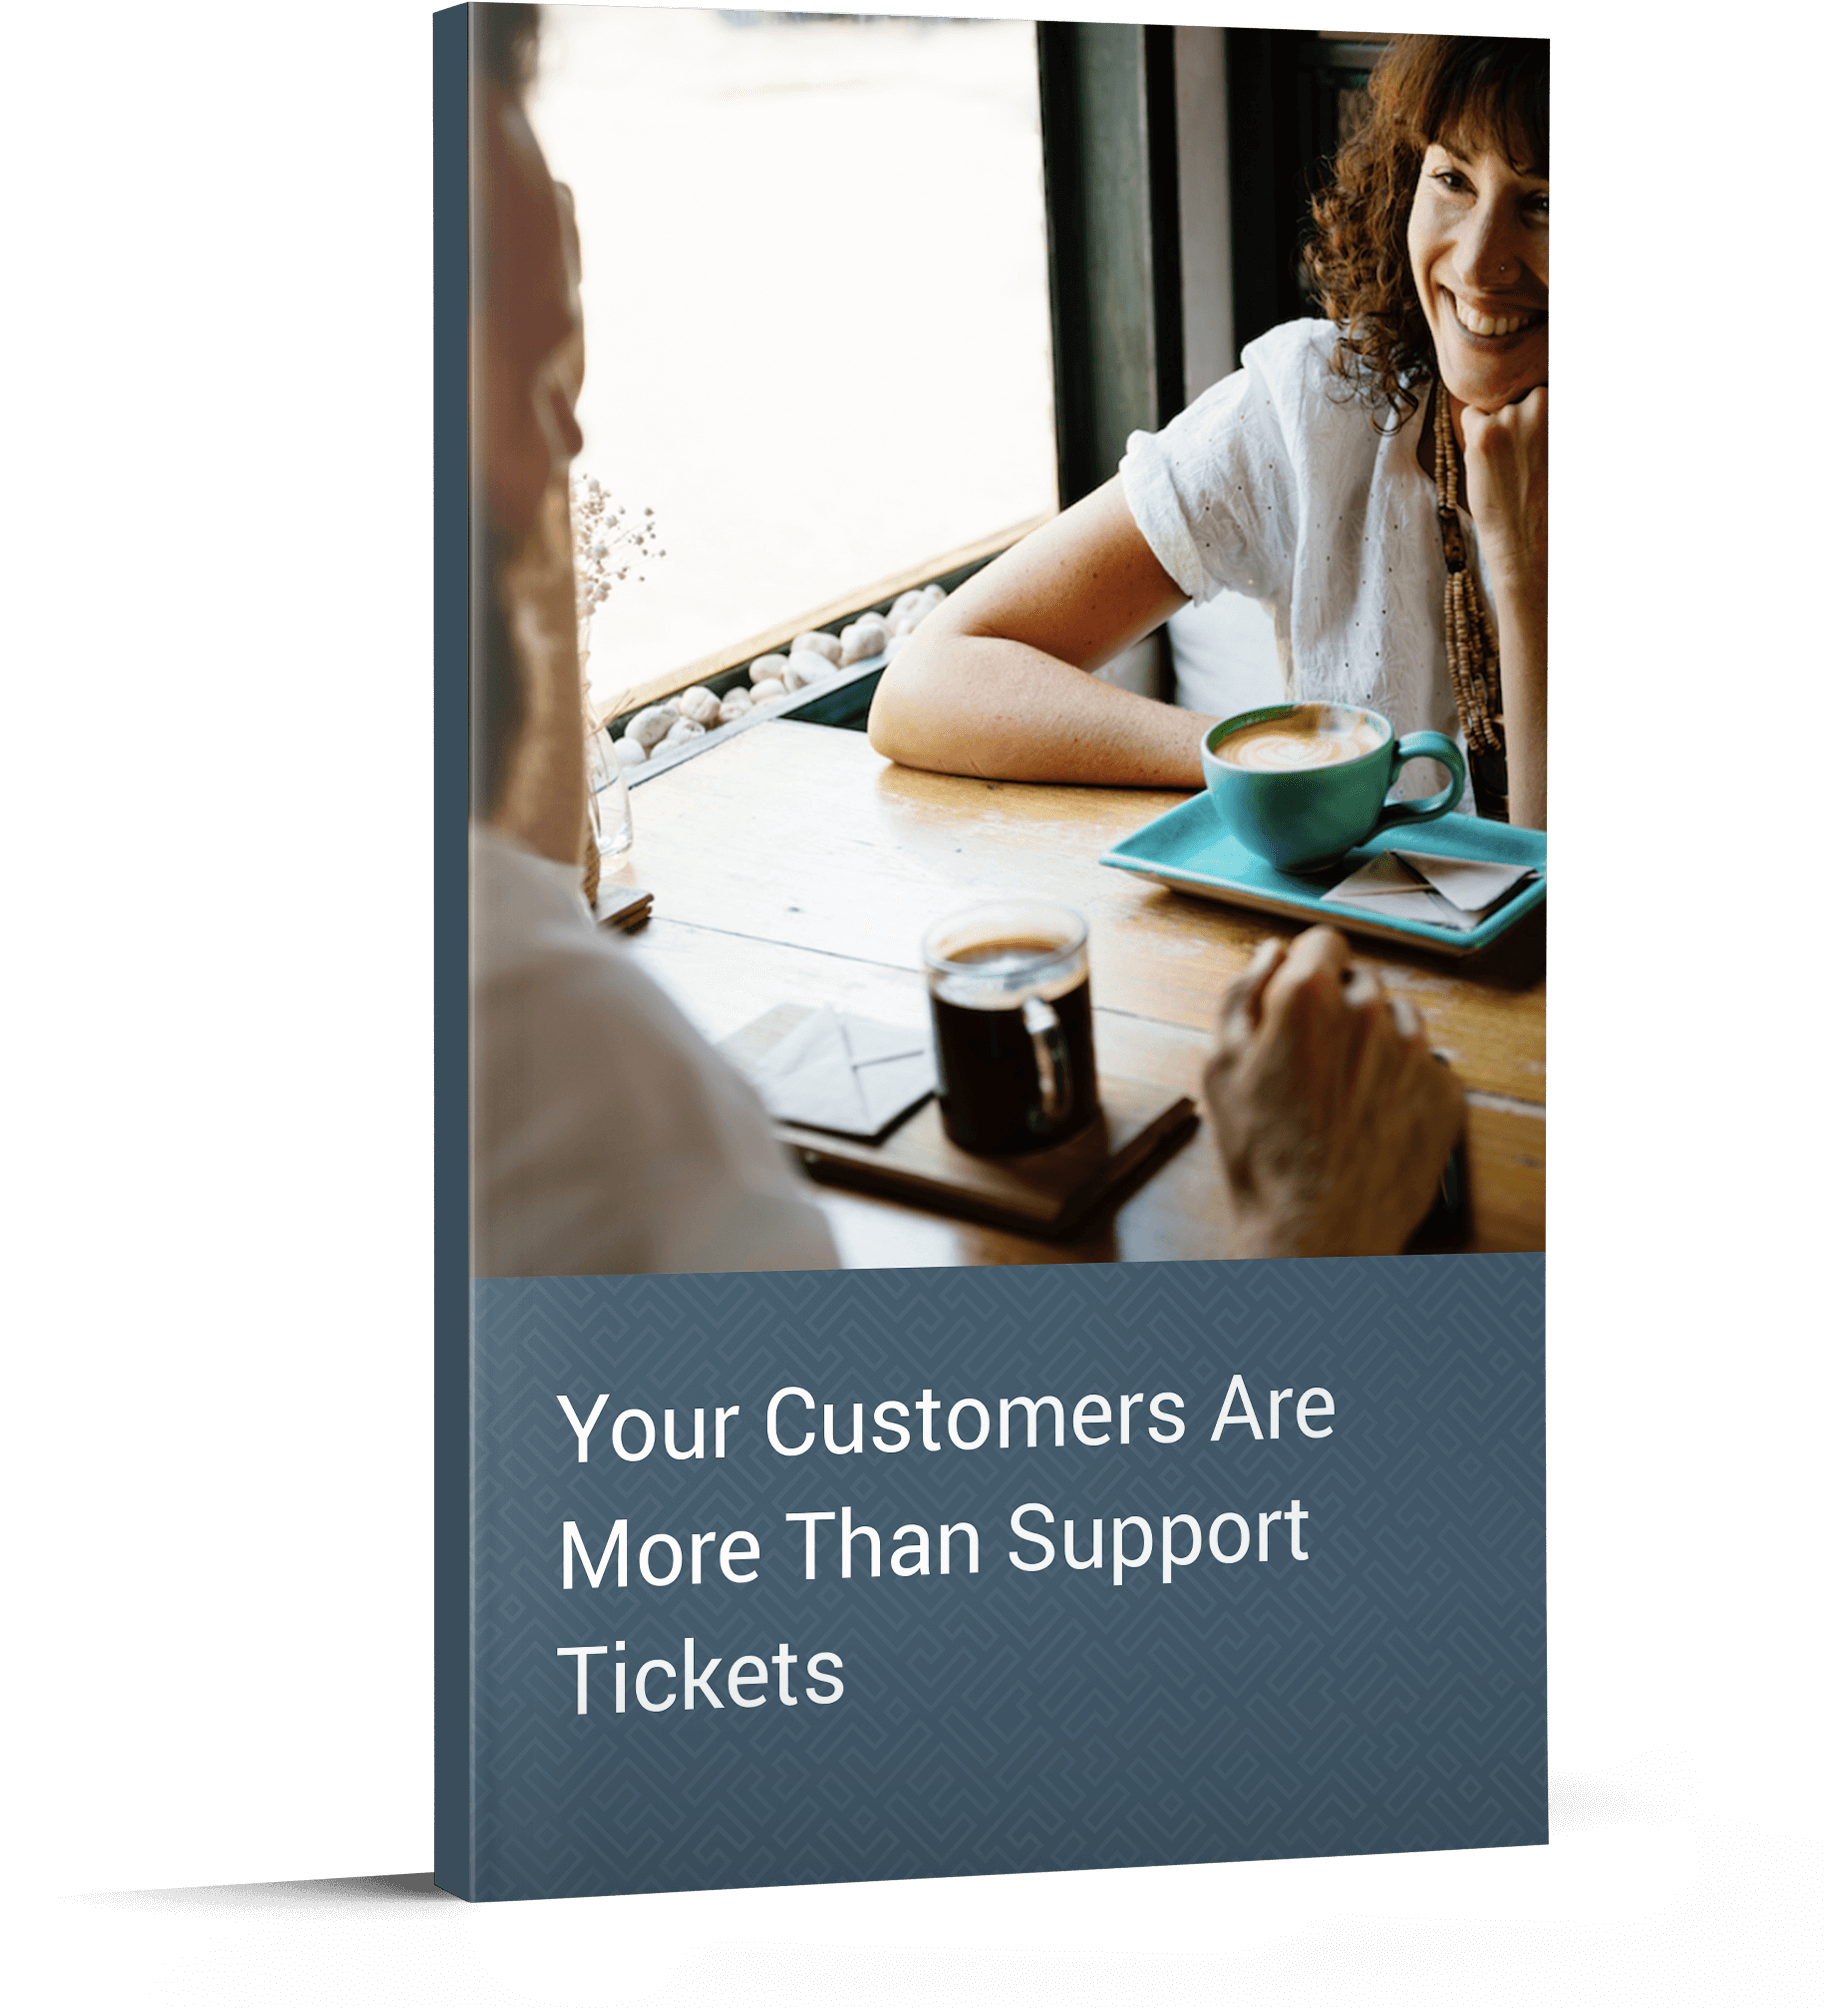 Customers are more than support tickets whitepaper